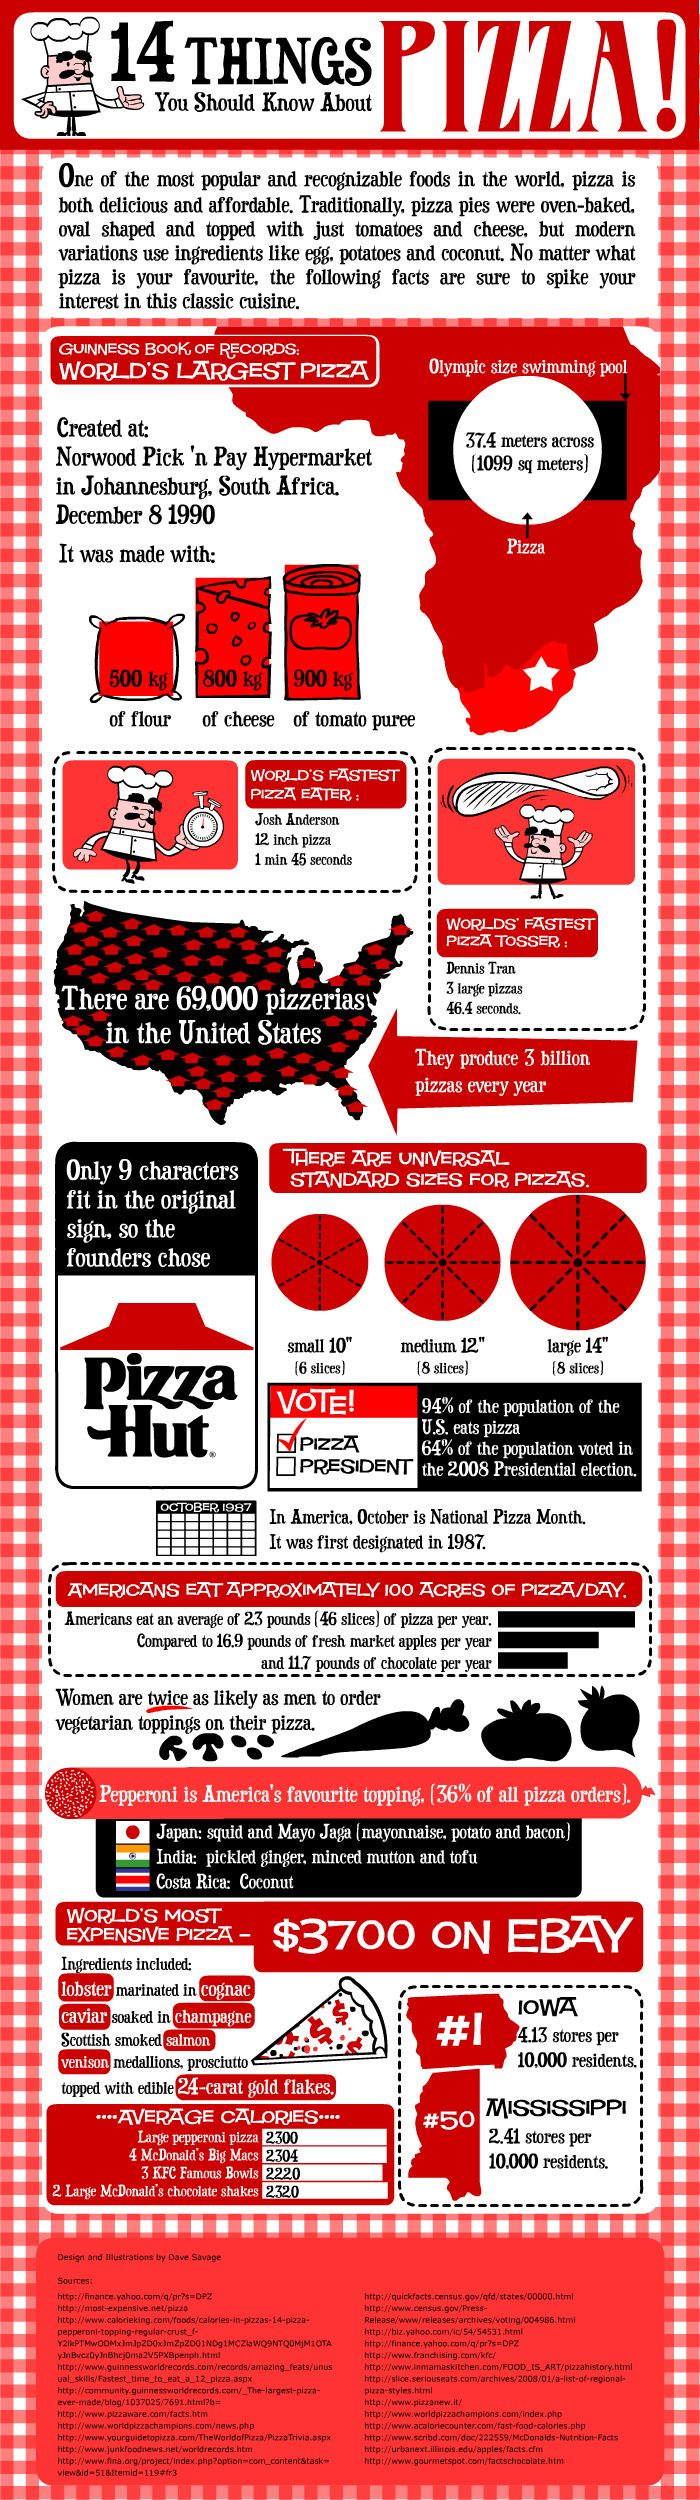 14 Things You Should Know about Pizza | THE Weight Loss Resource. Source: http://www.weightloss.org/14-things-you-should-know-about-pizza/